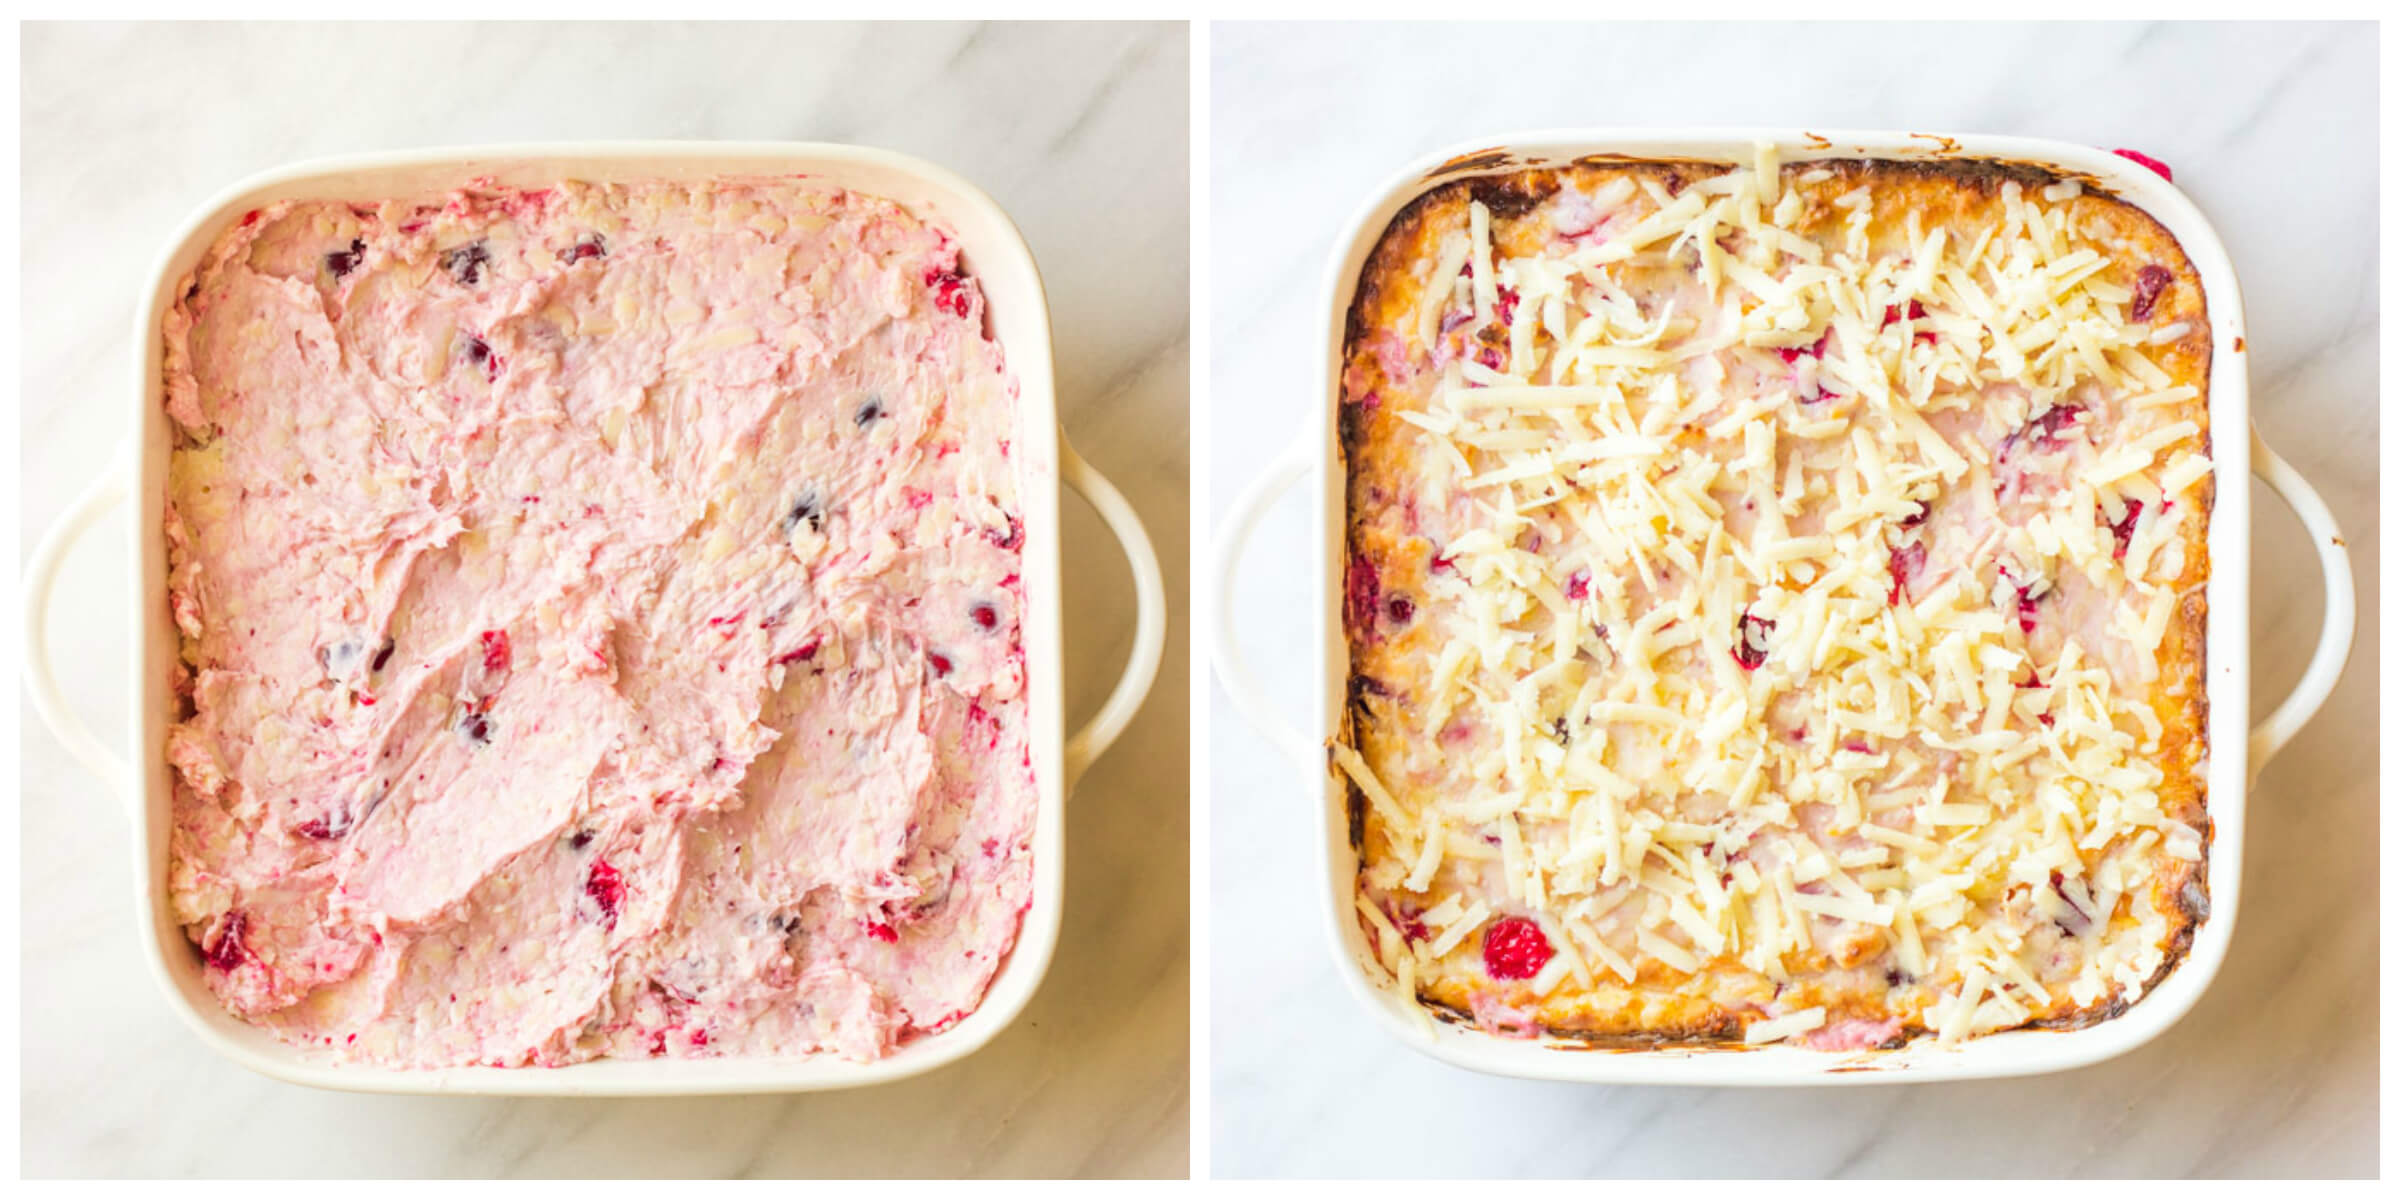 Step by step instructions on how to make cranberry dip